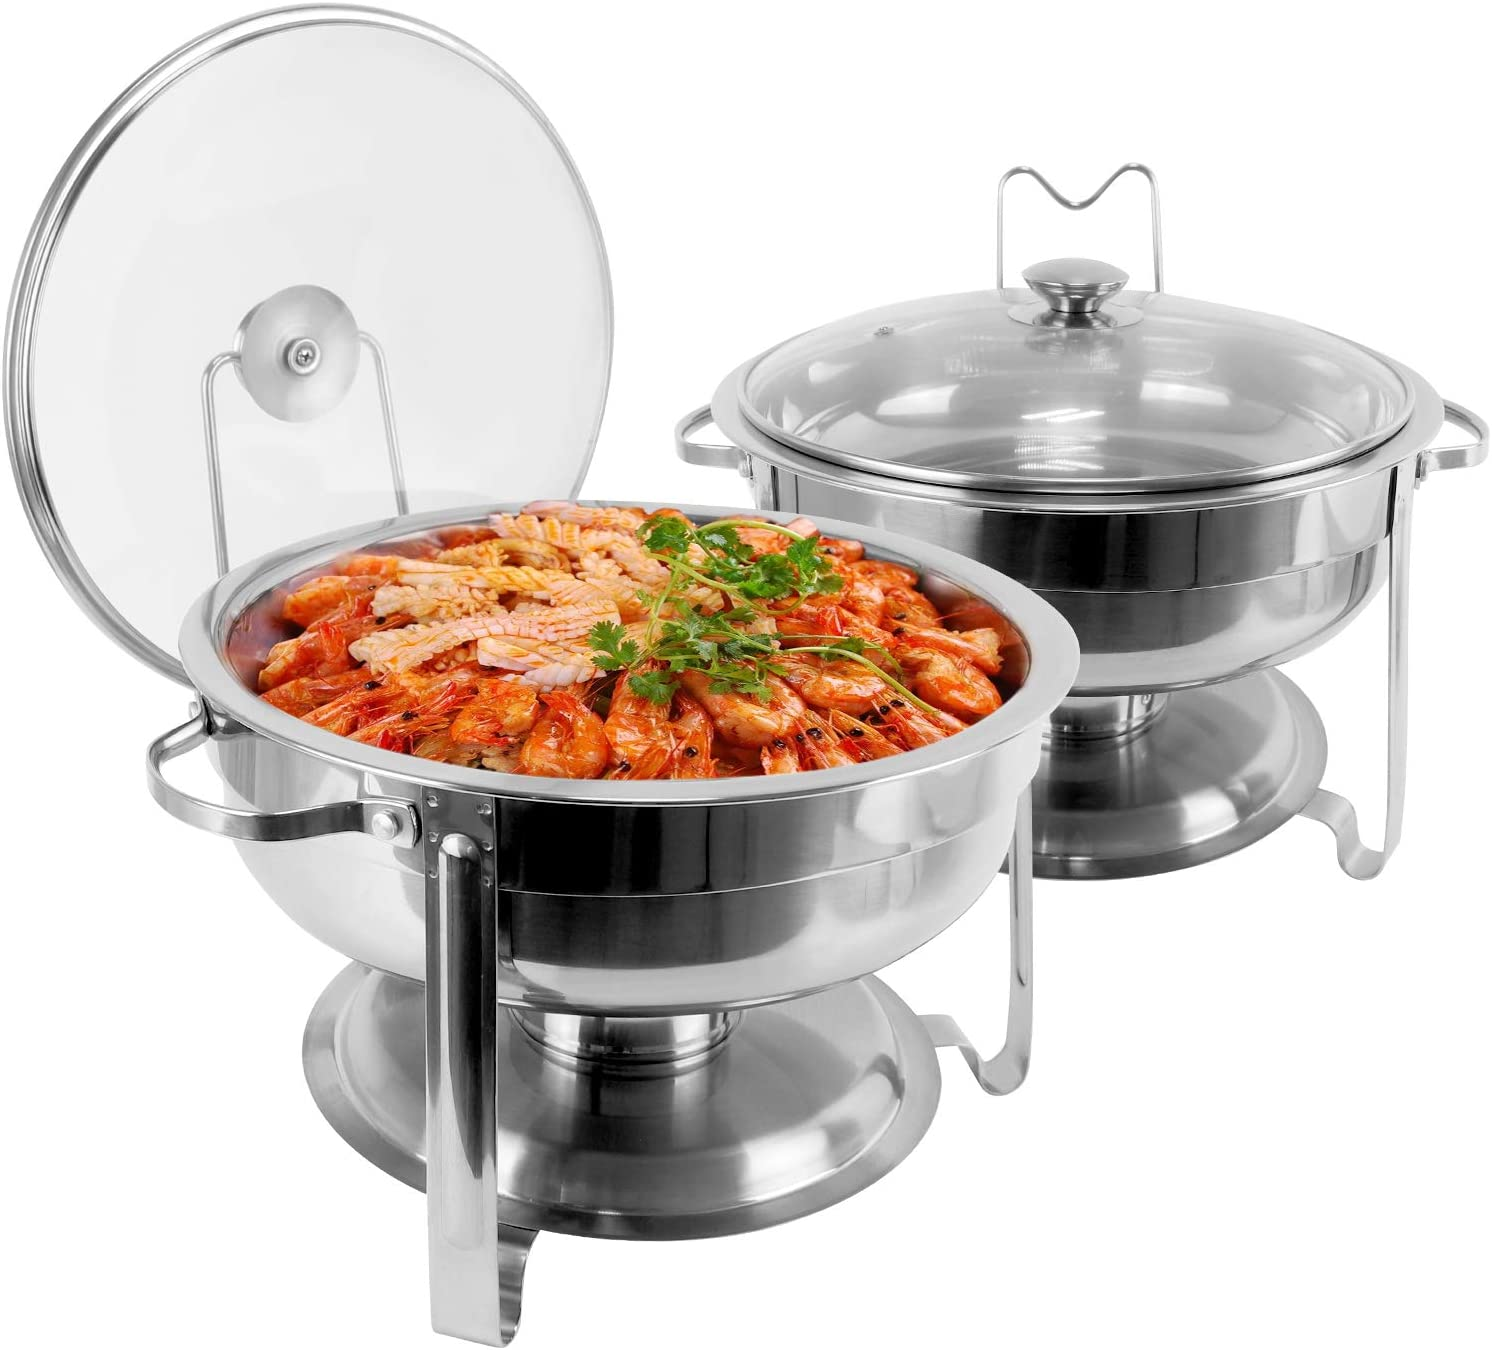 430 Stainless Steel Chafing Dish Buffet Warmer Set, 4 Quart Round Chafer Dish with Lid & Lid Holder For Buffet Weddings Parties Banquets Catering Events (A Set of Two)